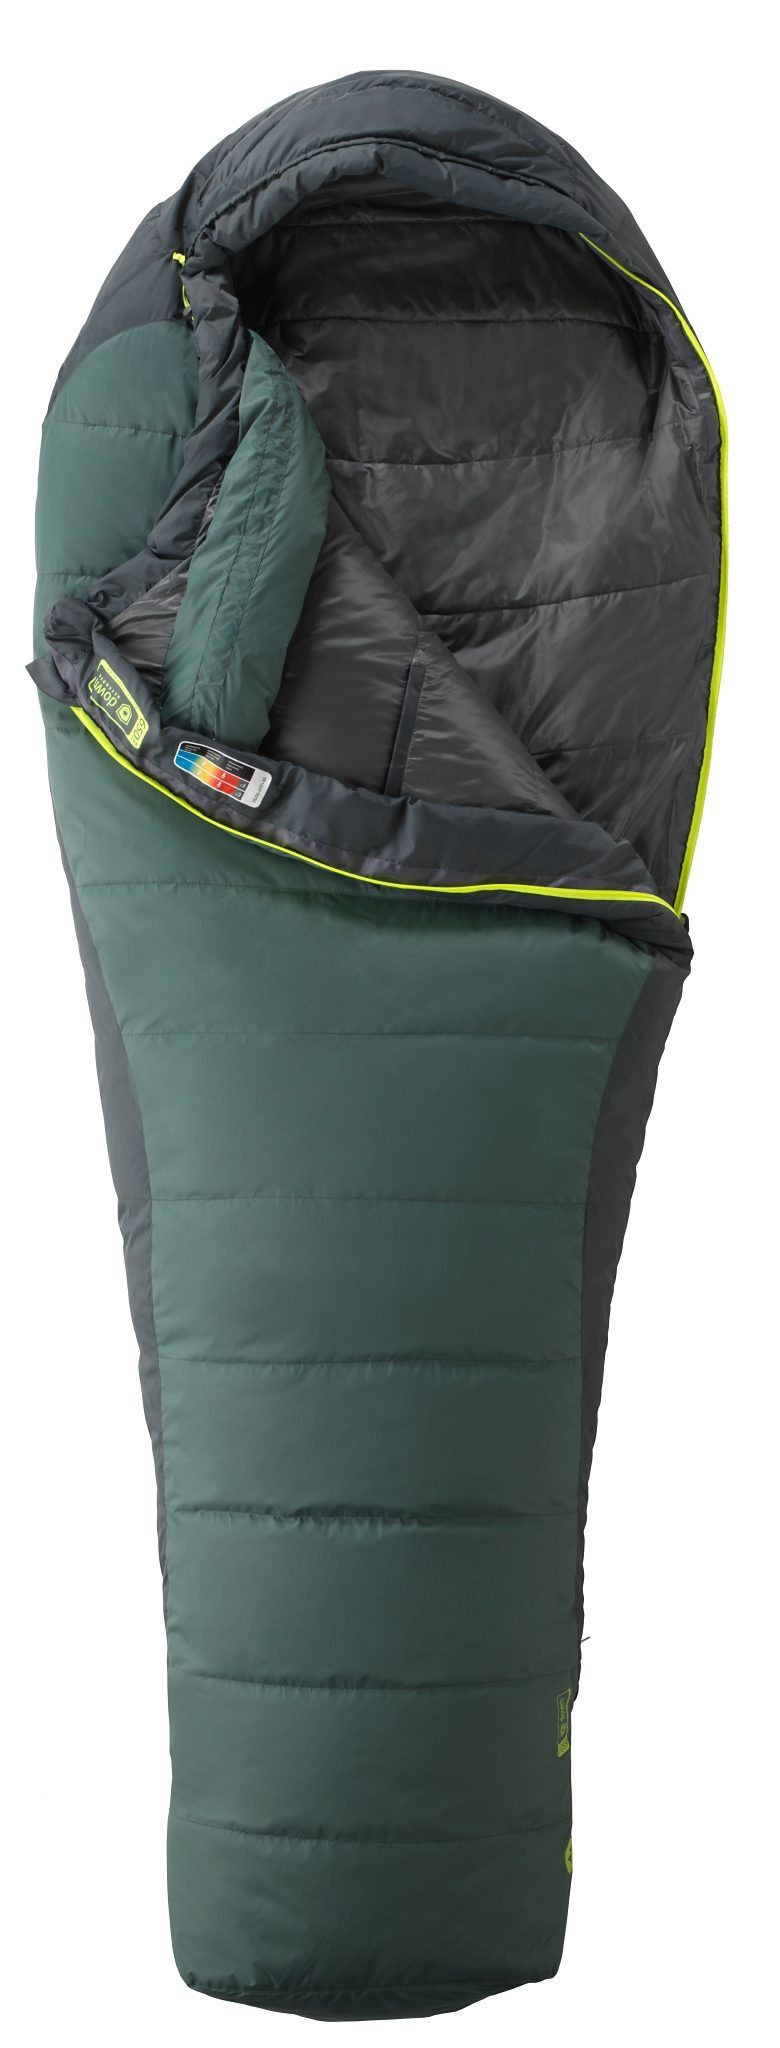 Marmot Schlafsack »Electrum Sleeping Bag Long«